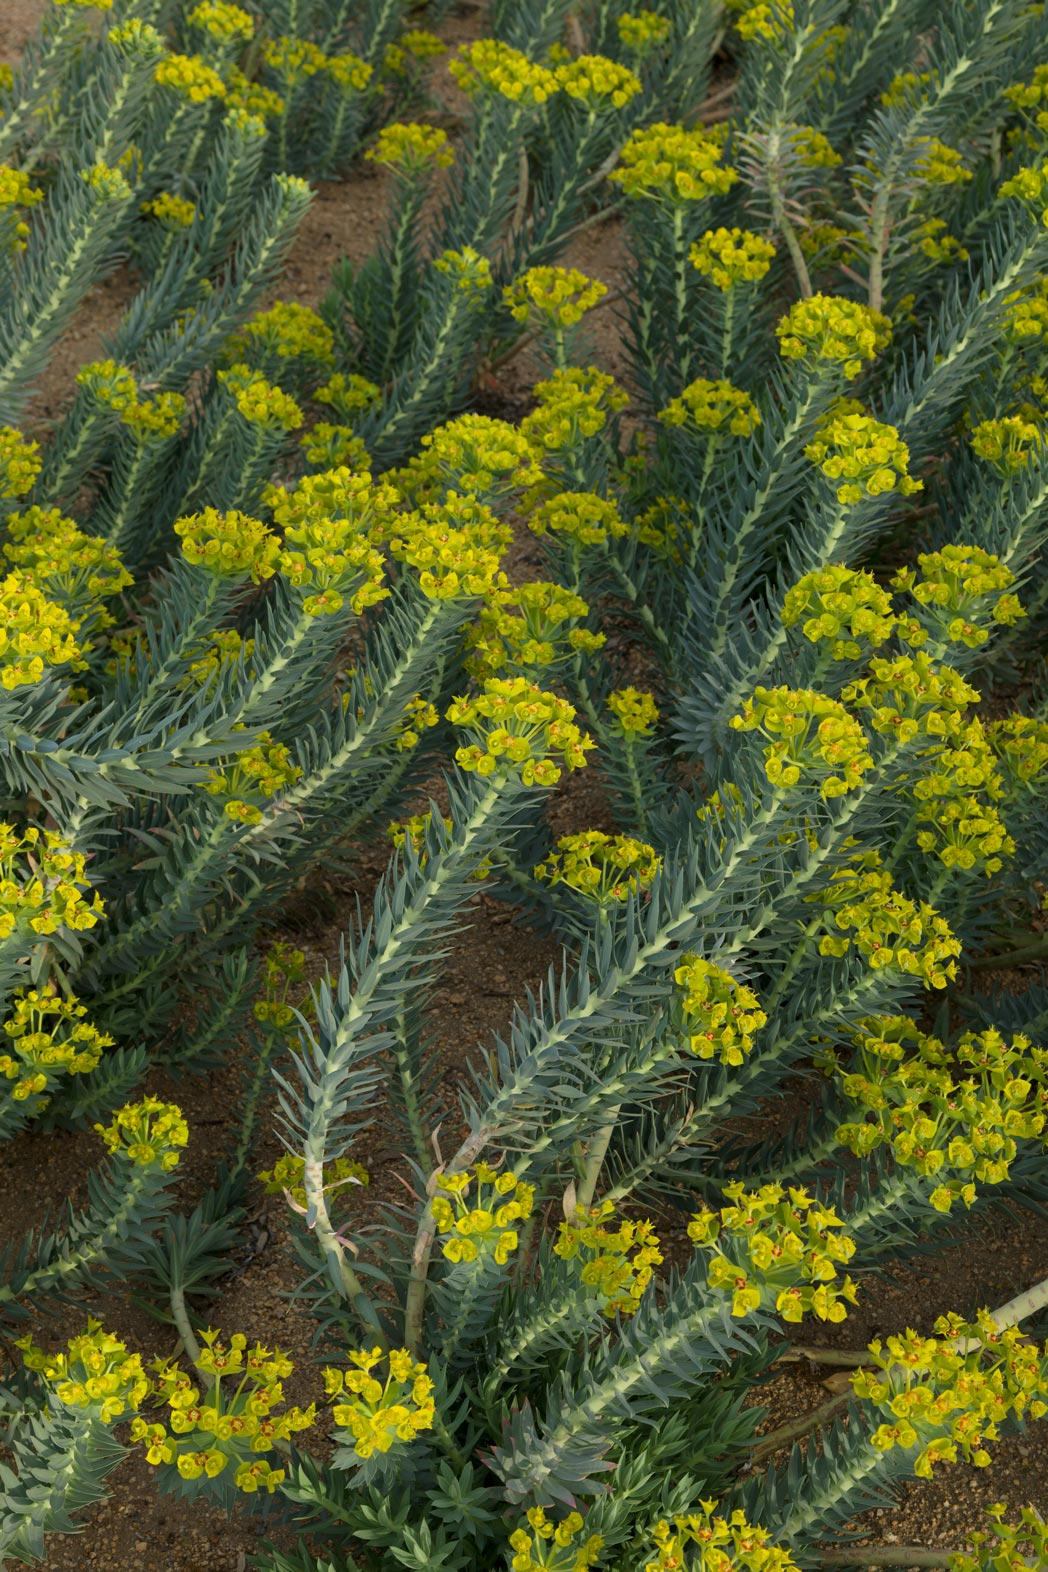 A large group of gopher plants display their chartreuse flowers.